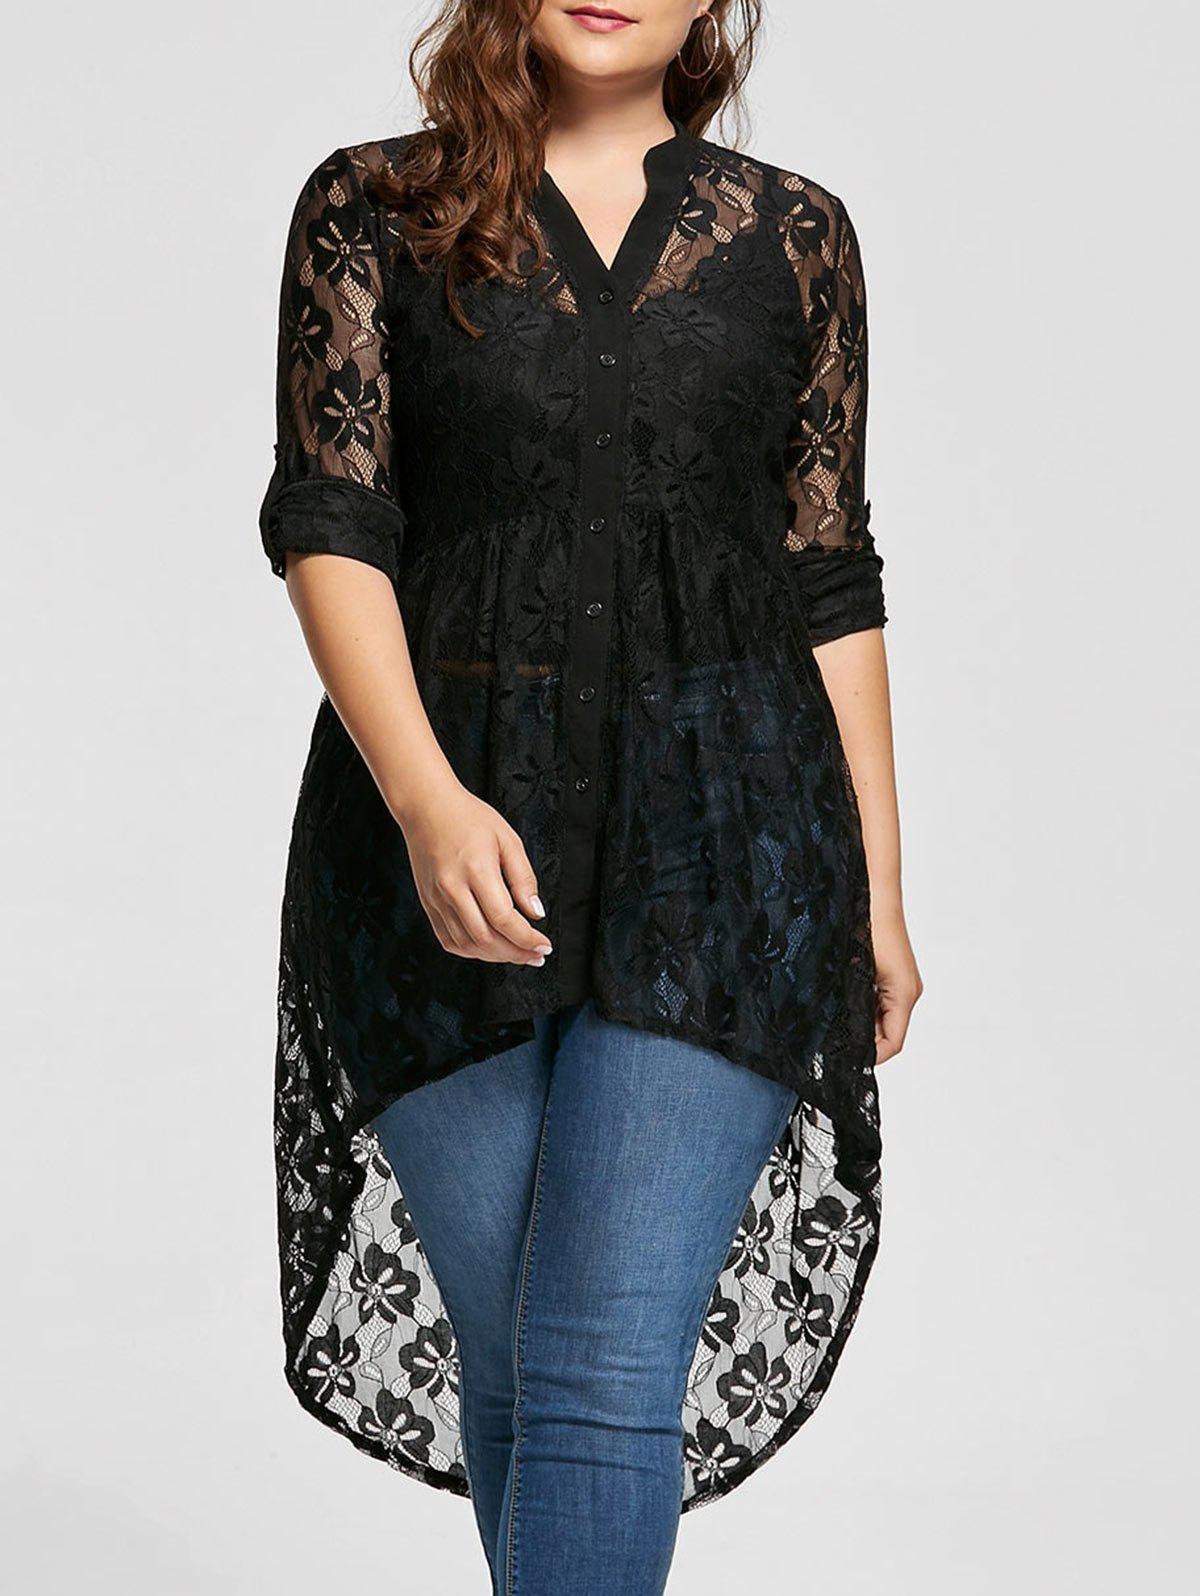 00544424907fb 37% OFF   2019 High Low Lace Long Sleeve Plus Size Top